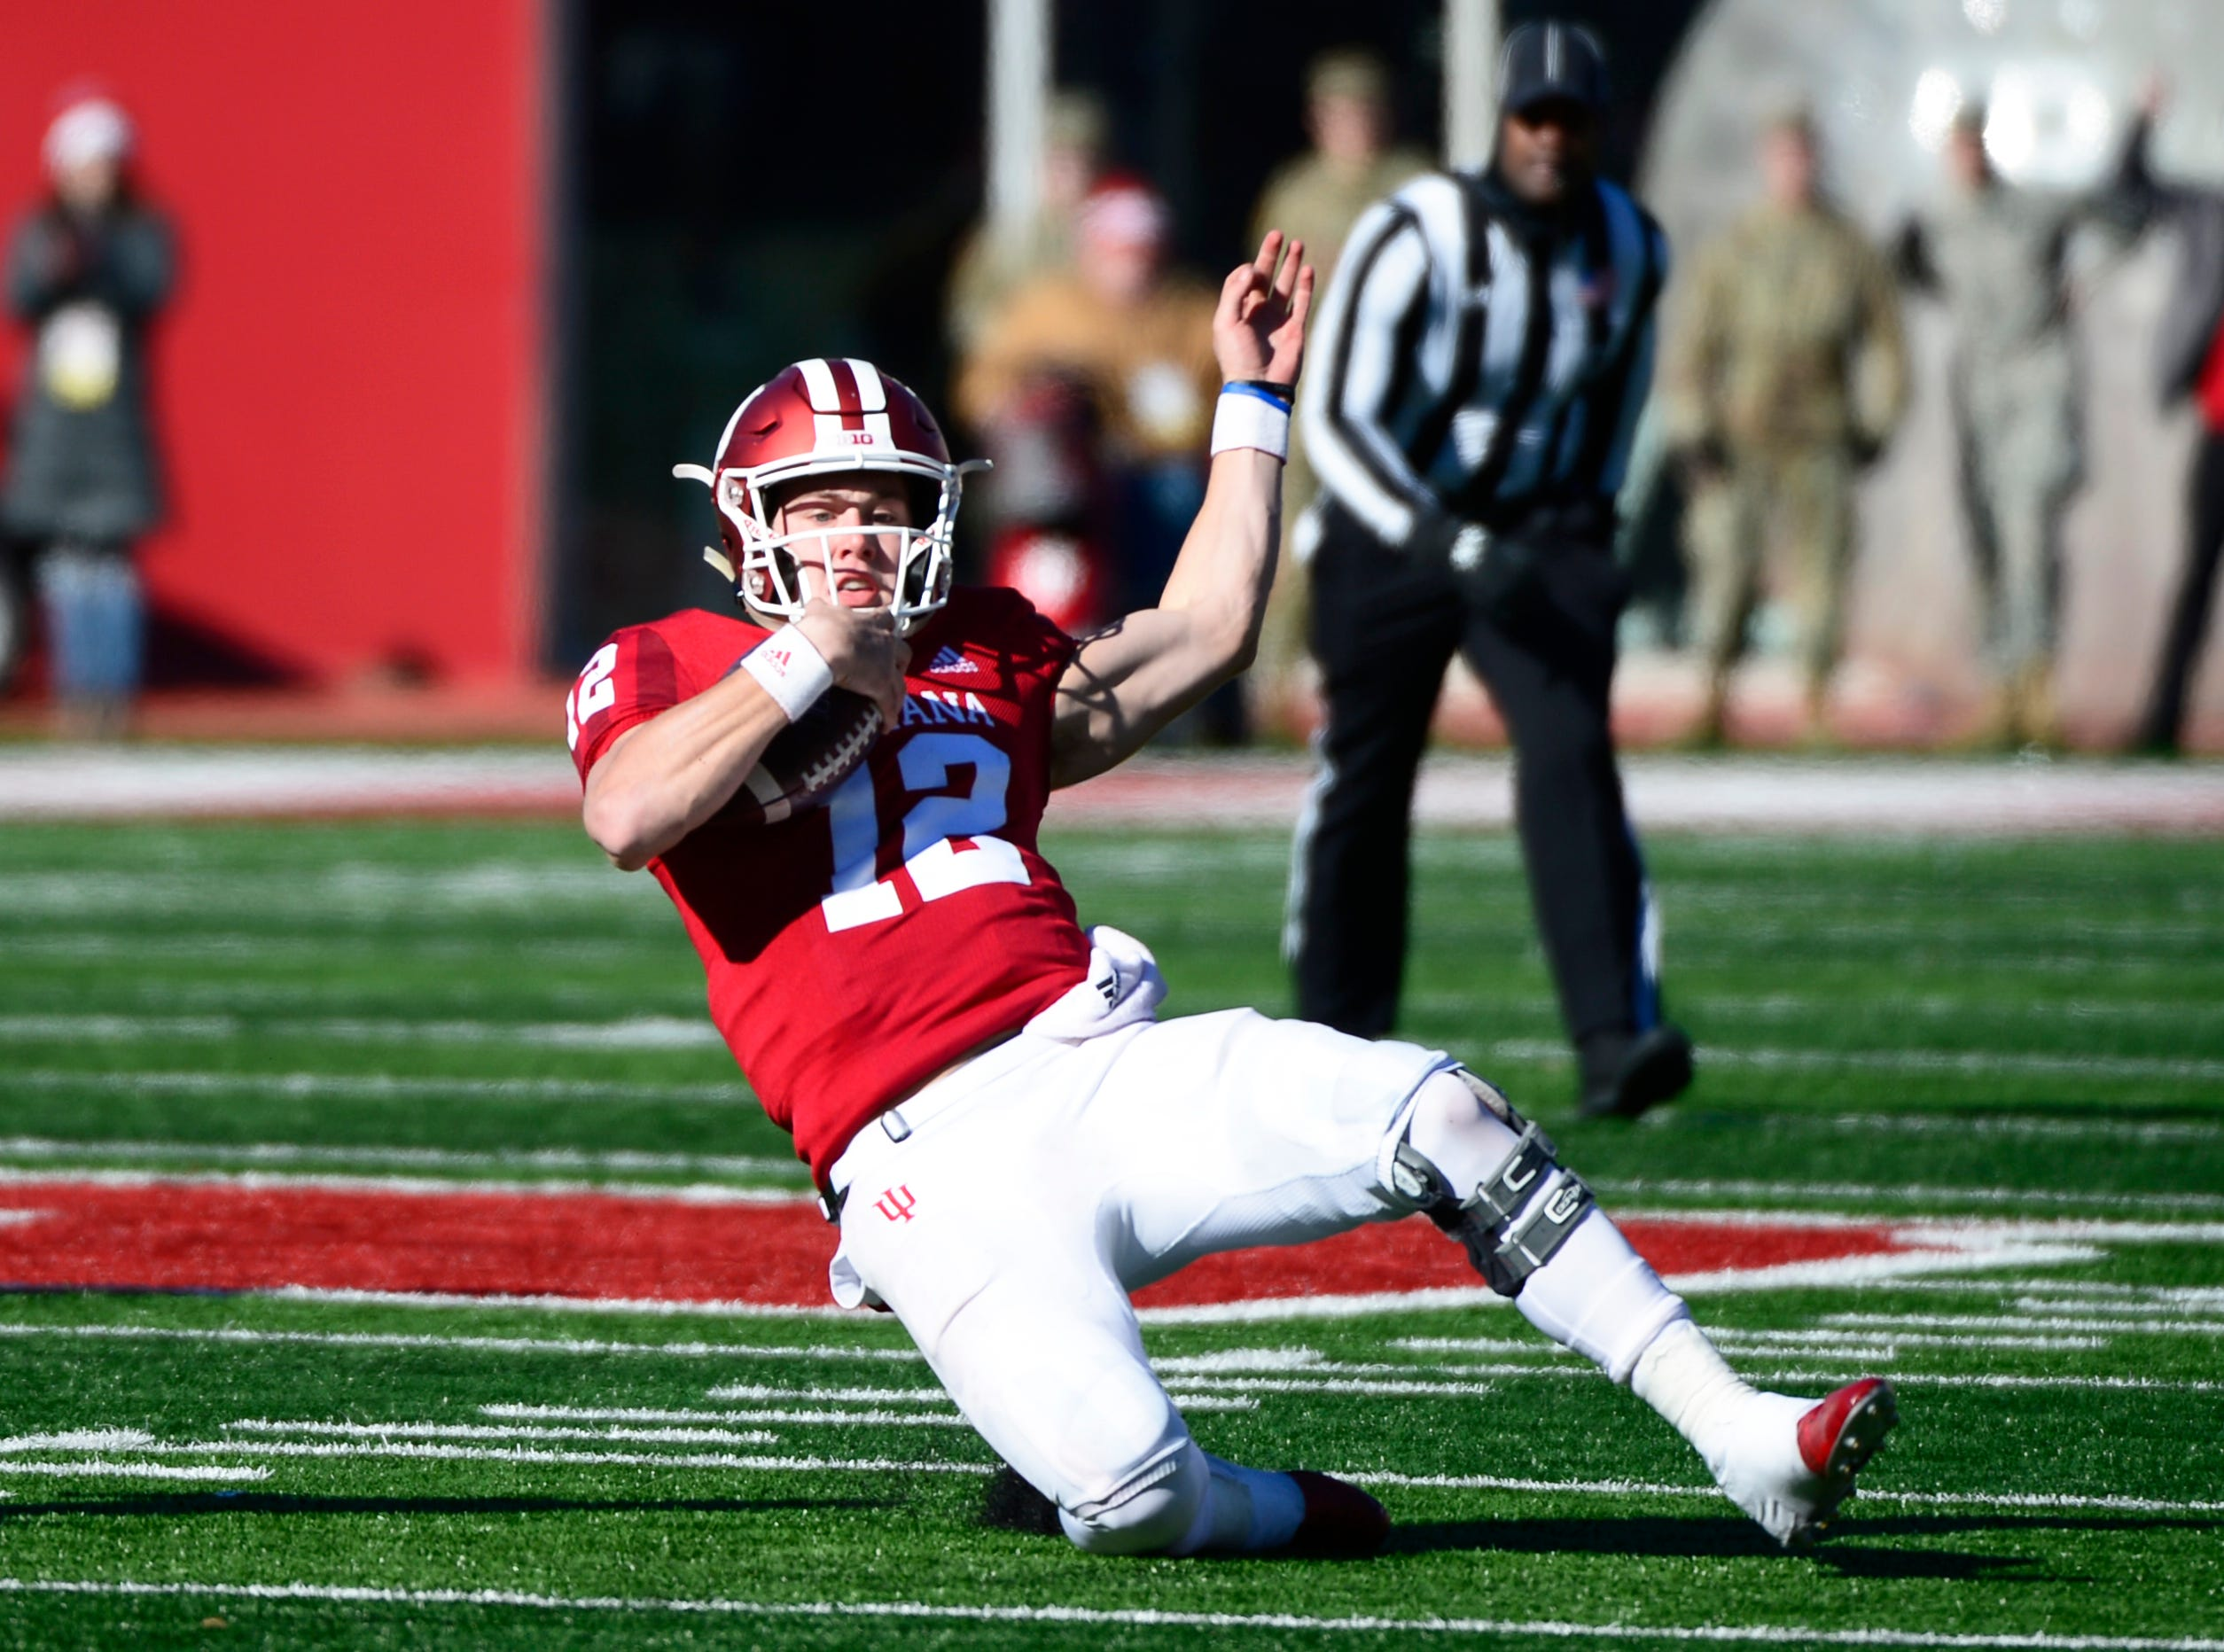 Indiana Hoosiers quarterback Peyton Ramsey (12) slides down during the game against Maryland at Memorial Stadium in Bloomington, Ind., on Satuday, Nov. 10, 2018.